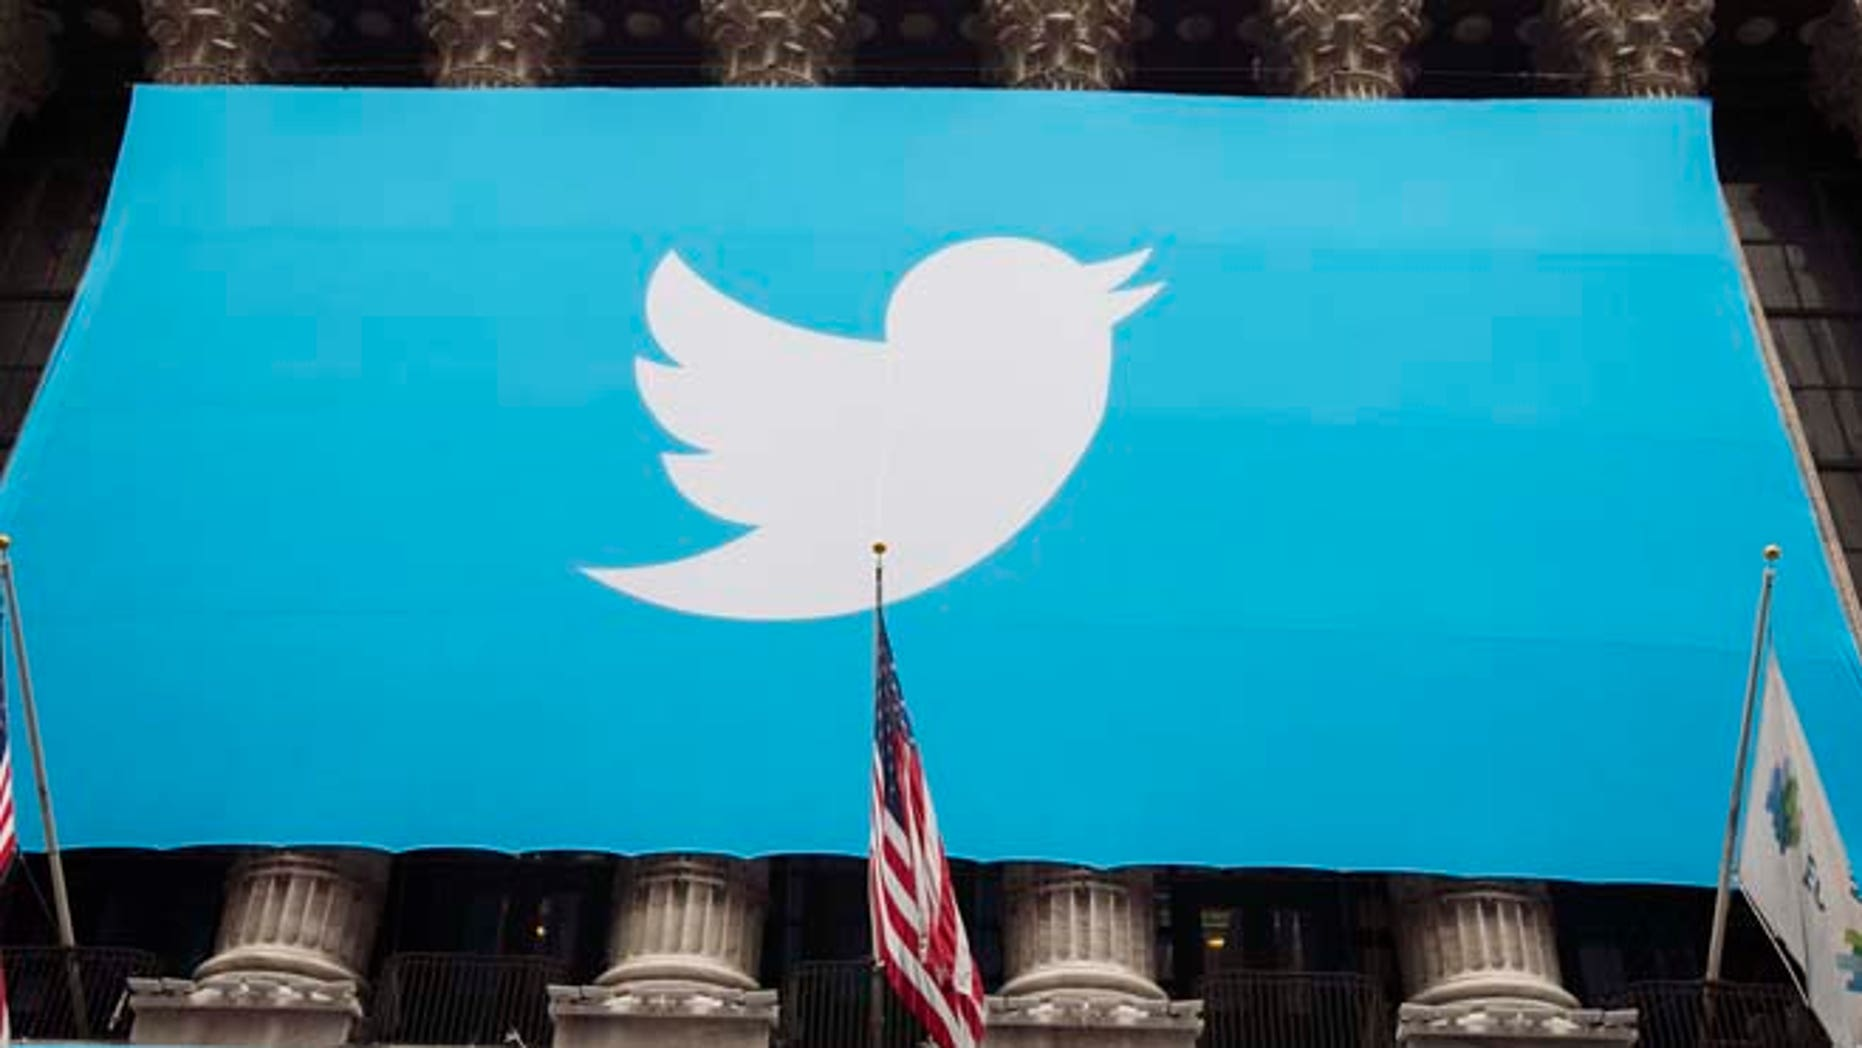 A sign displays the Twitter logo on the front of the New York Stock Exchange in New York, Nov. 7, 2013.